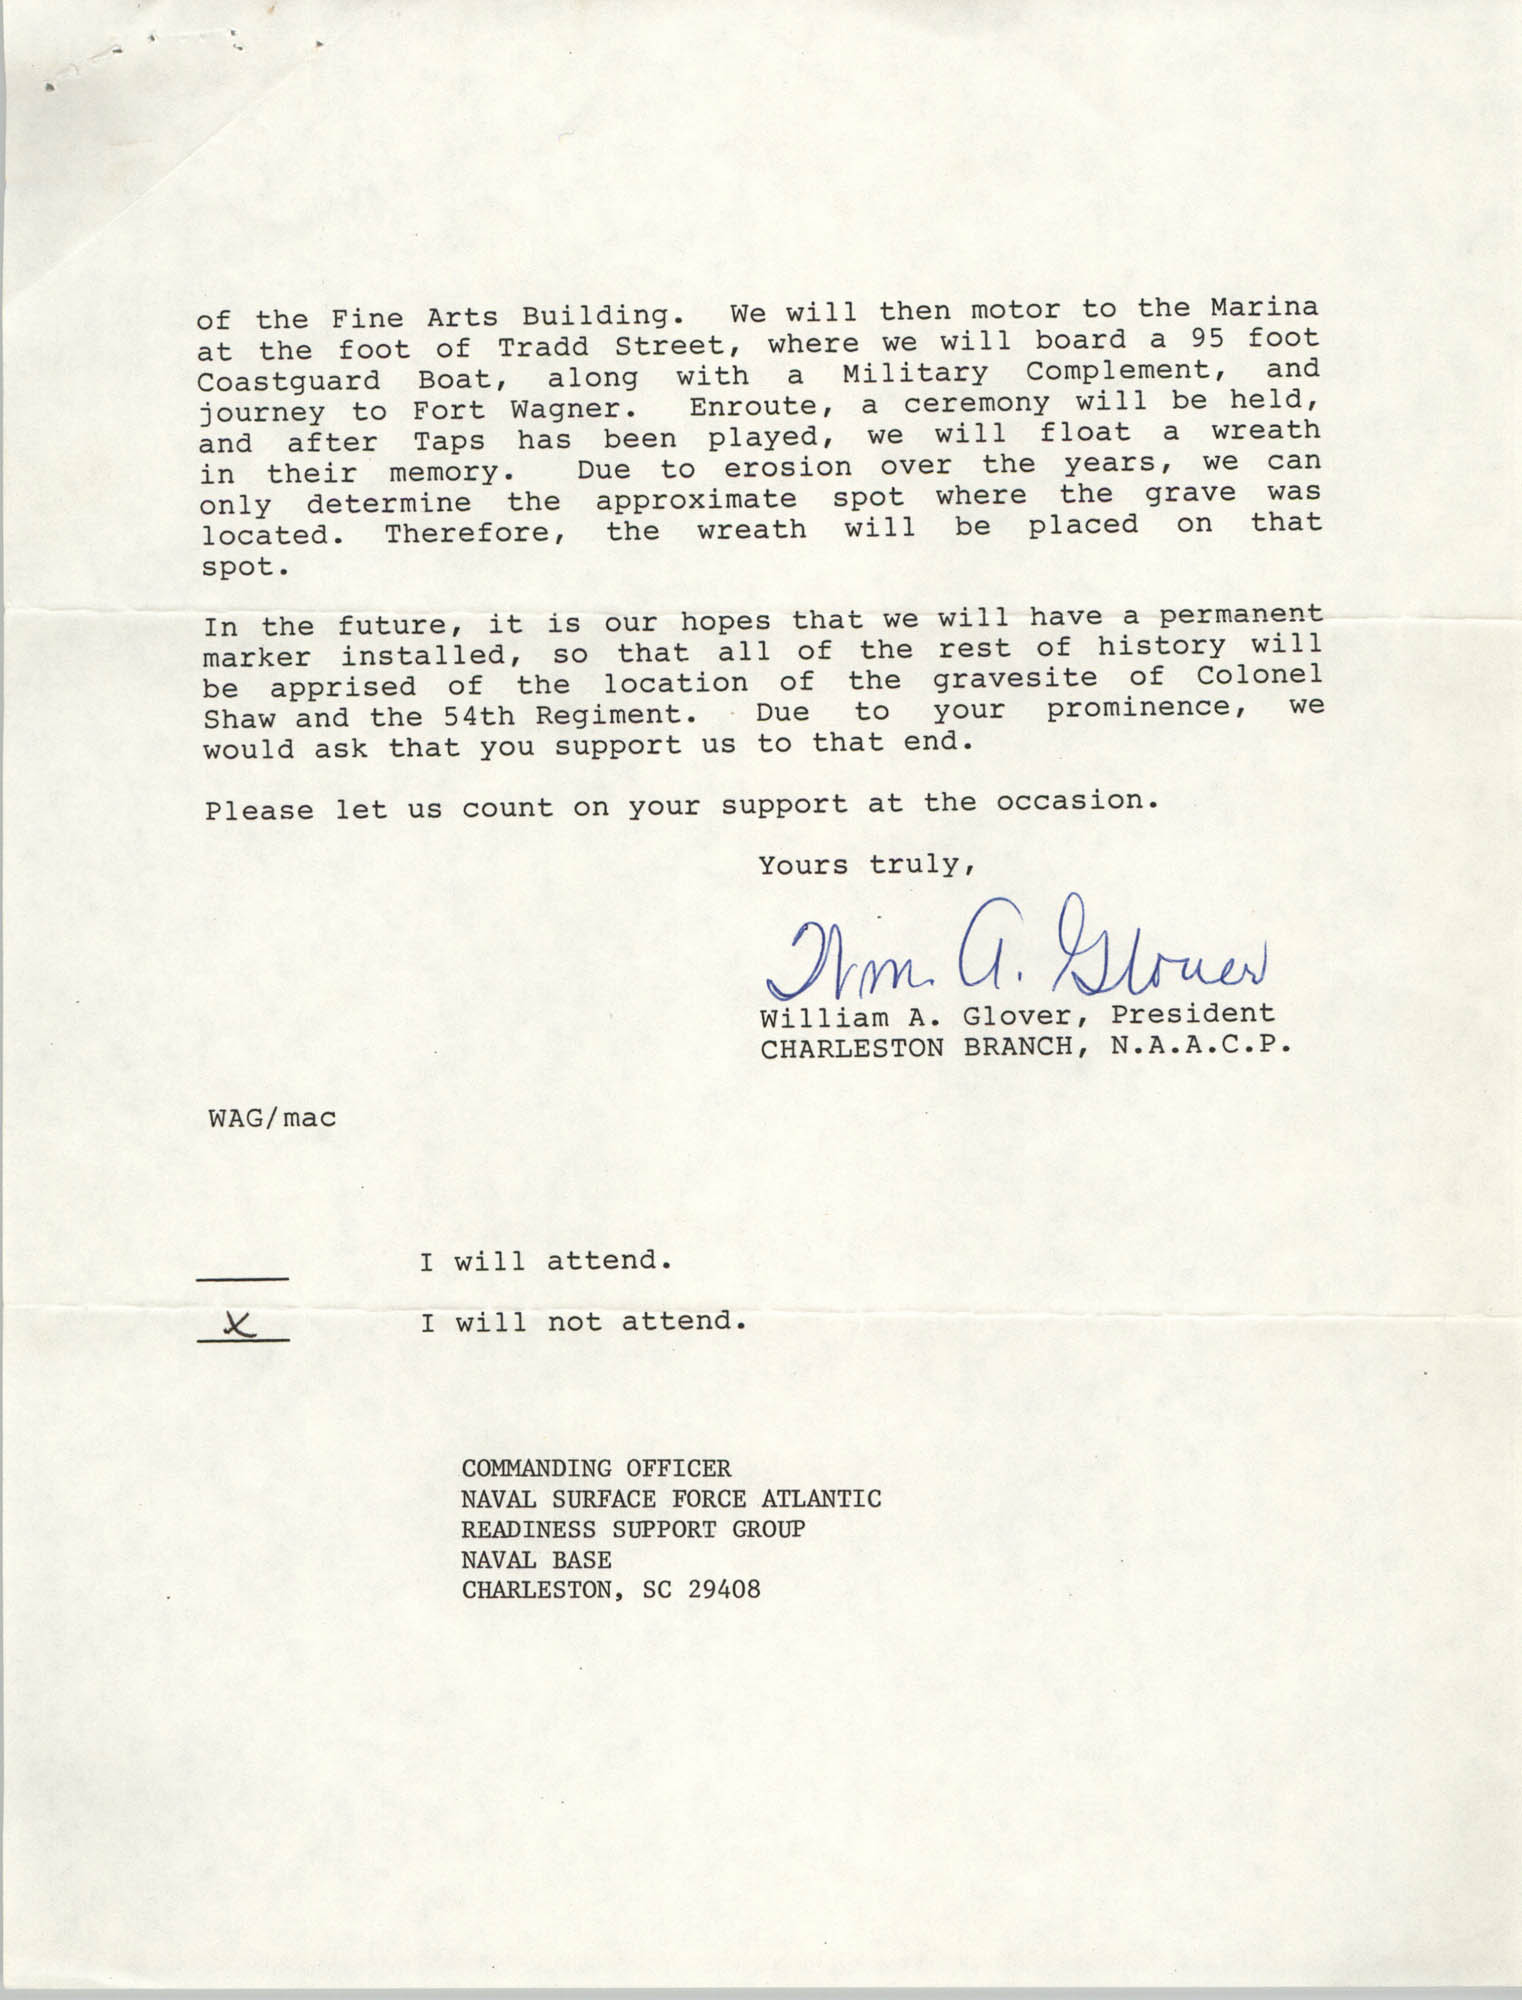 Response from Commanding Officer, Letter from William A. Glover to Friend, May 6, 1987